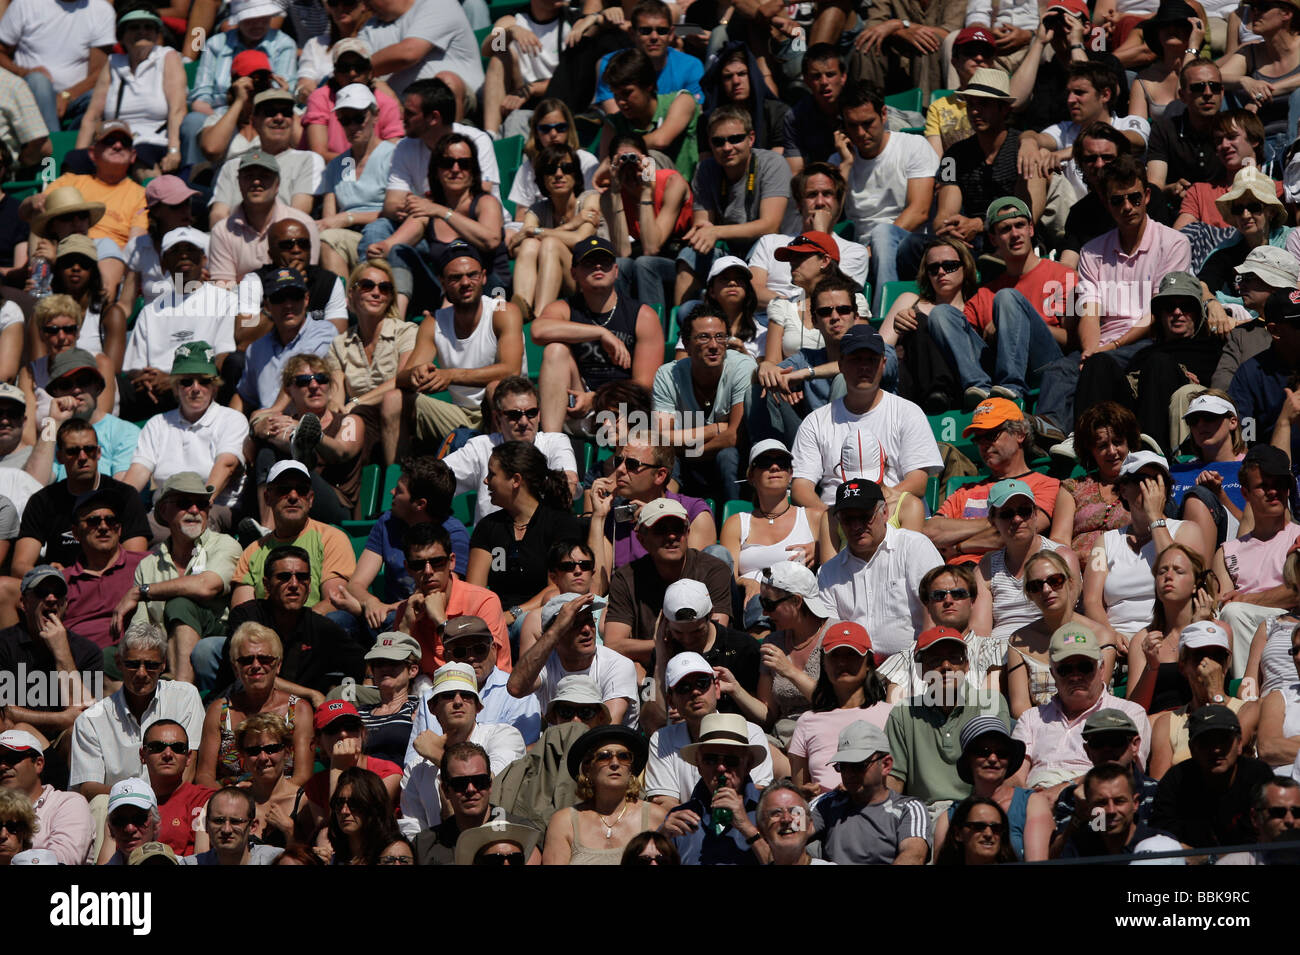 Section of the crowd at the 2009 French Open at Roland Garros - Stock Image